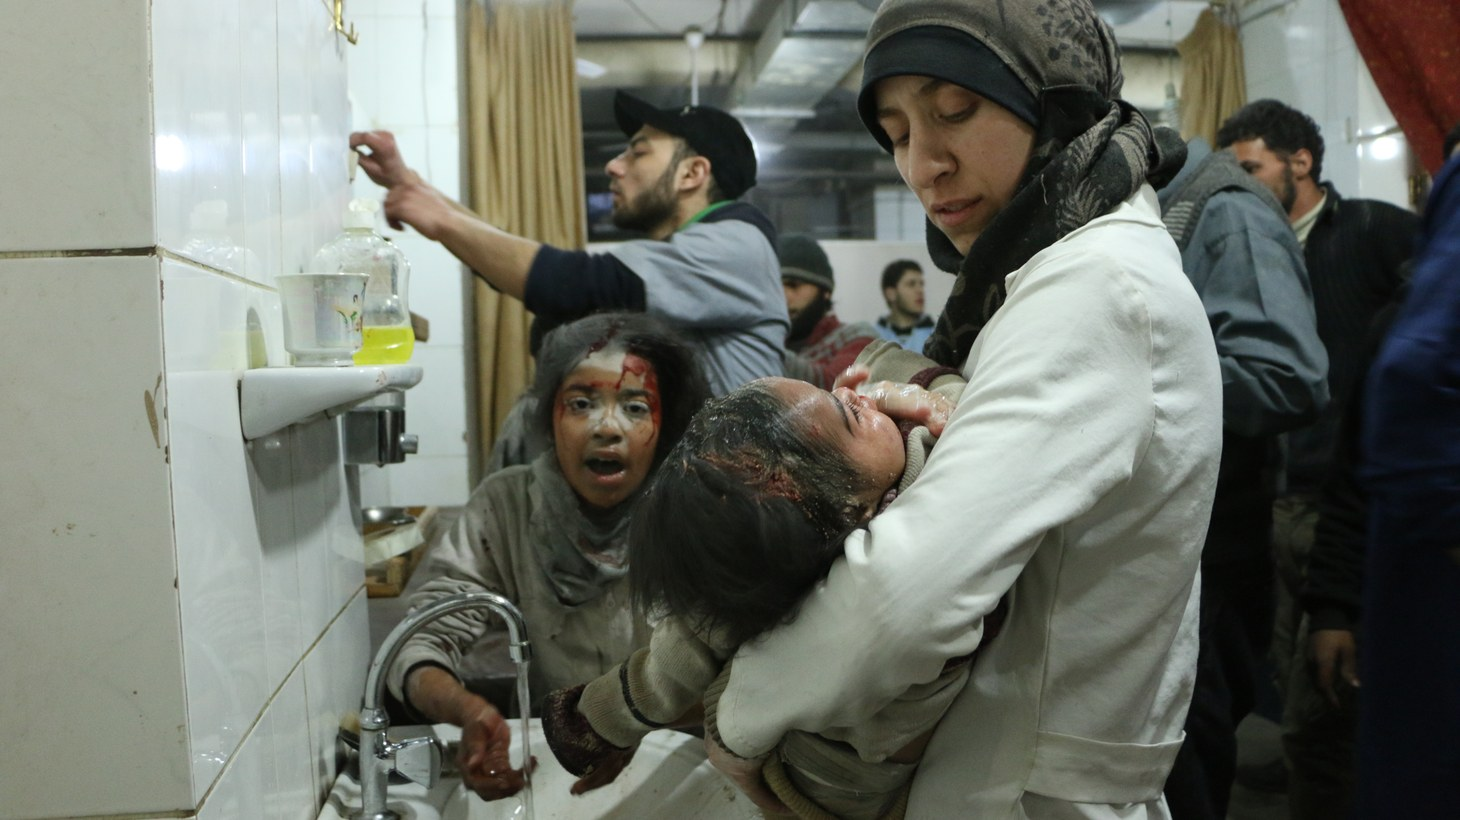 Al Ghouta, Syria - Dr. Amani (R) treats an injured baby amongst other medical staff and victims.